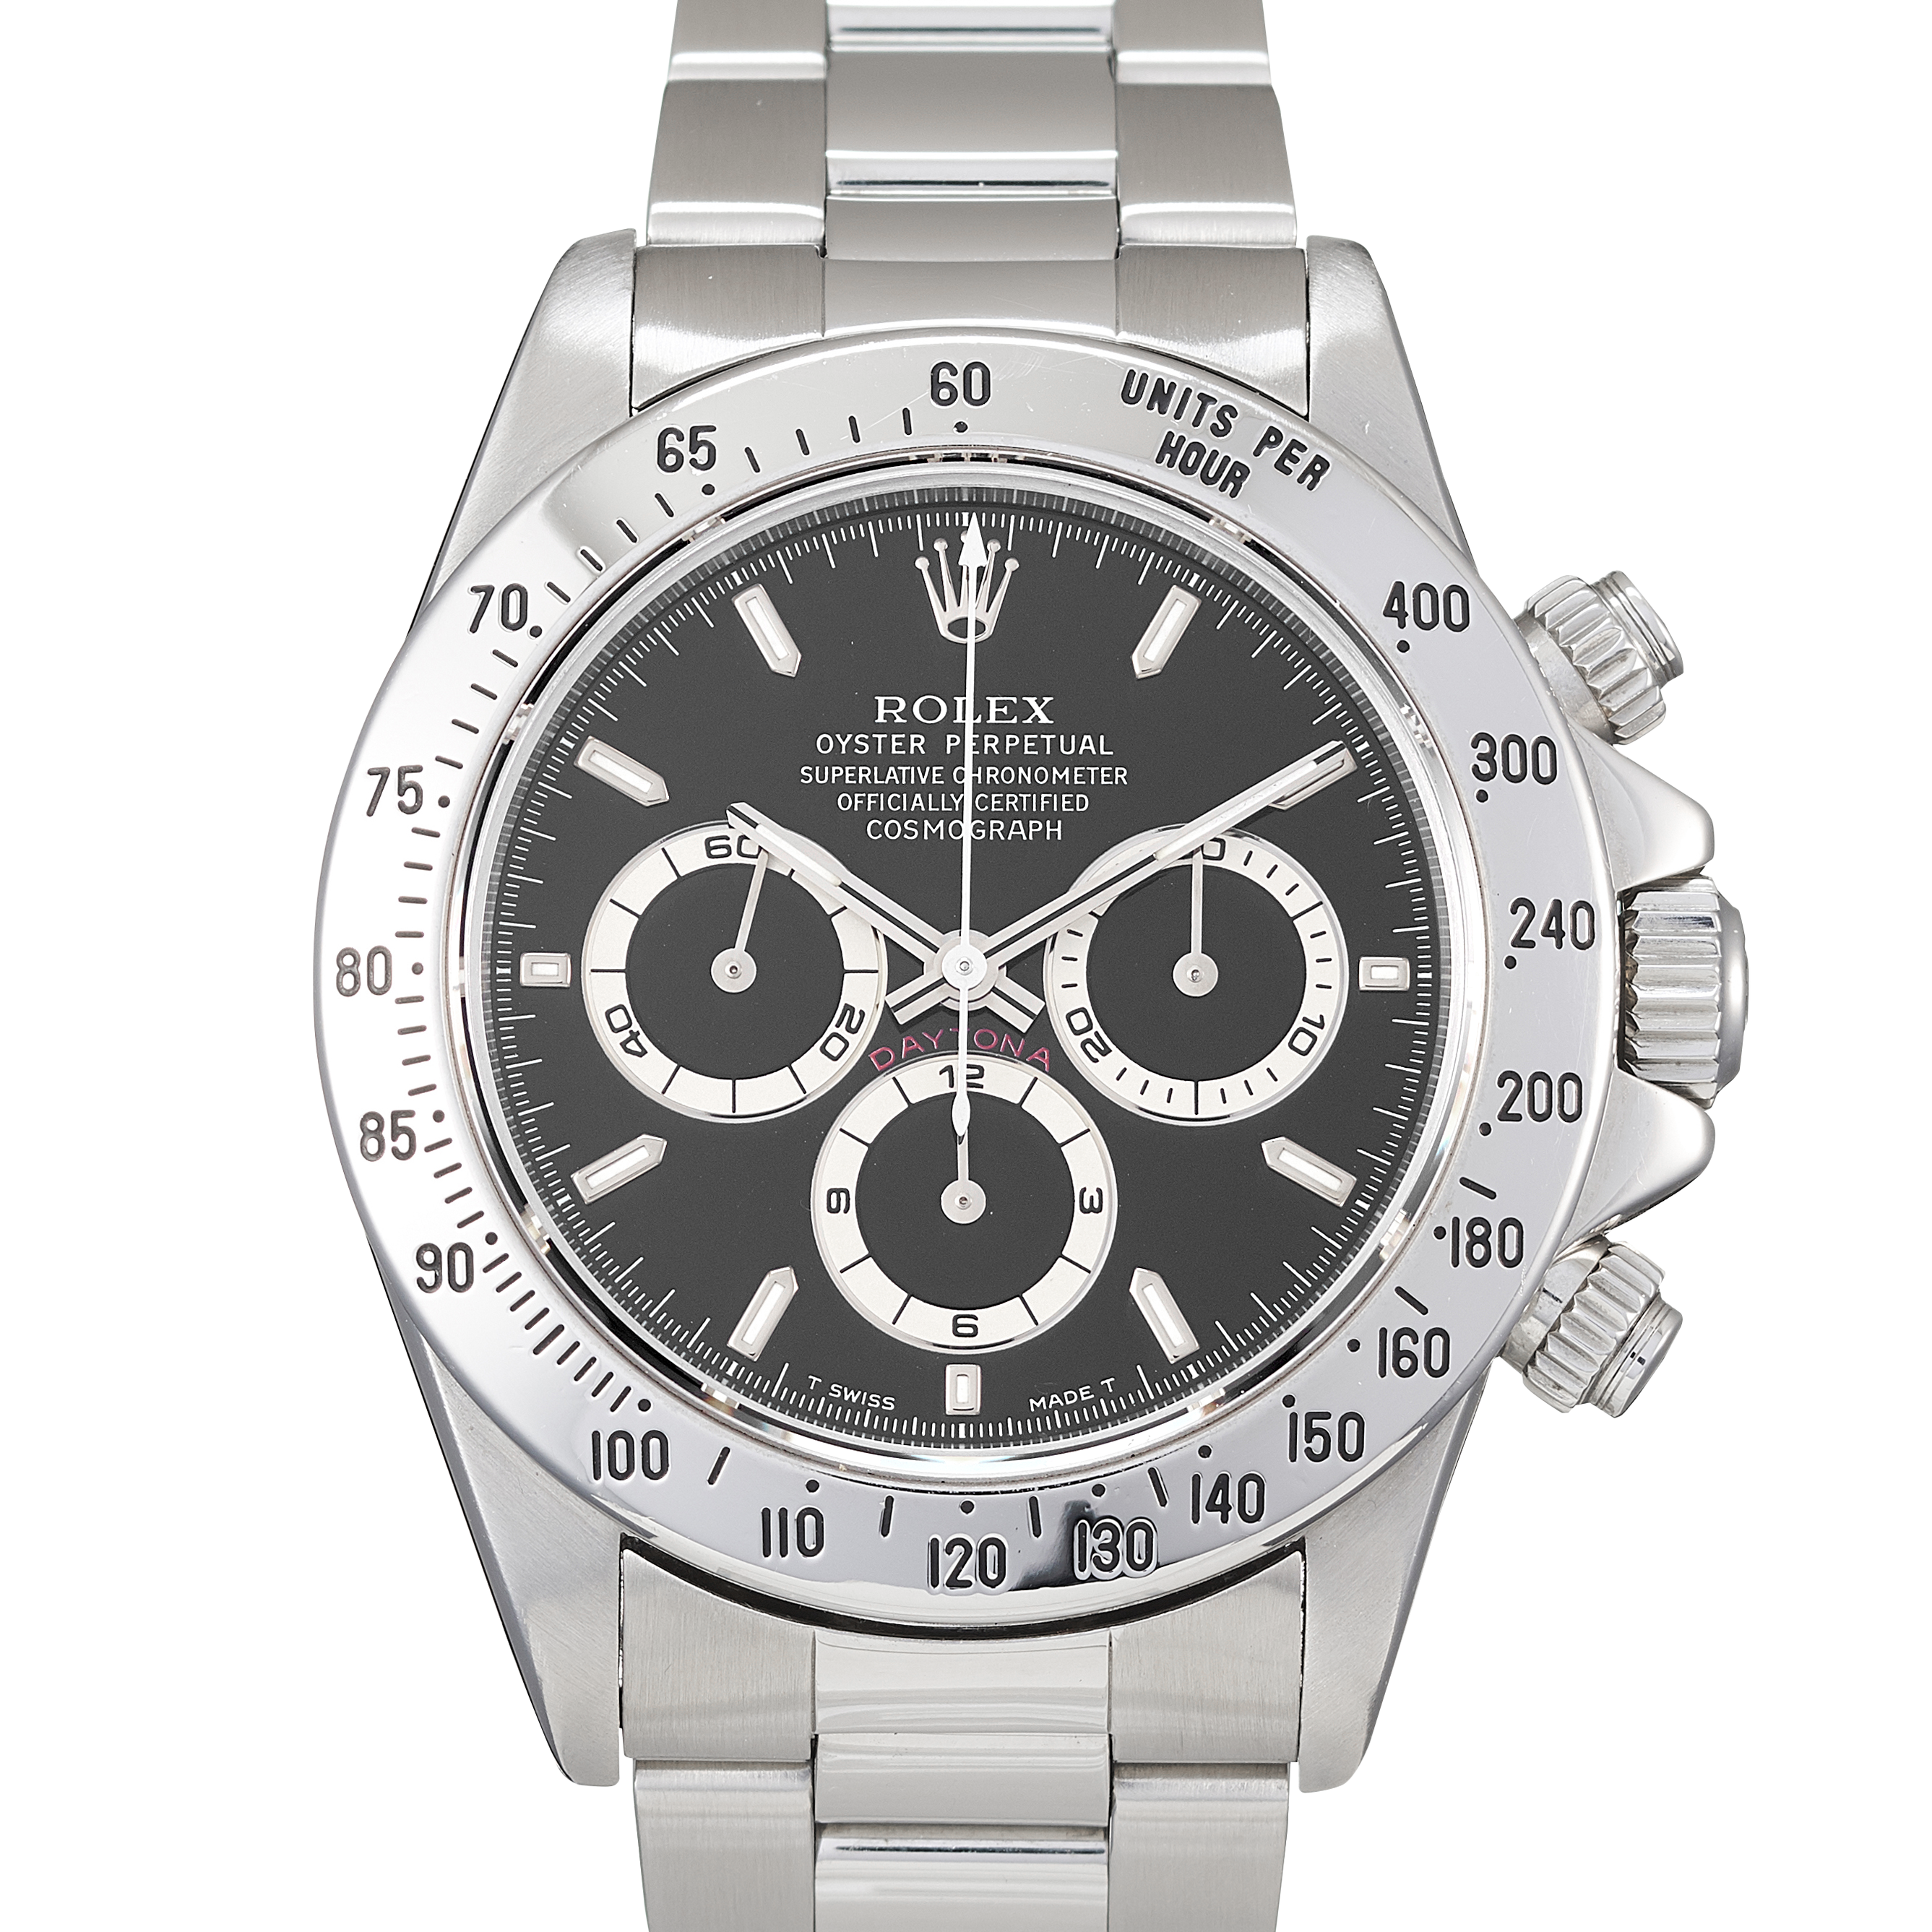 Rolex Cosmograph Daytona Watches for Sale